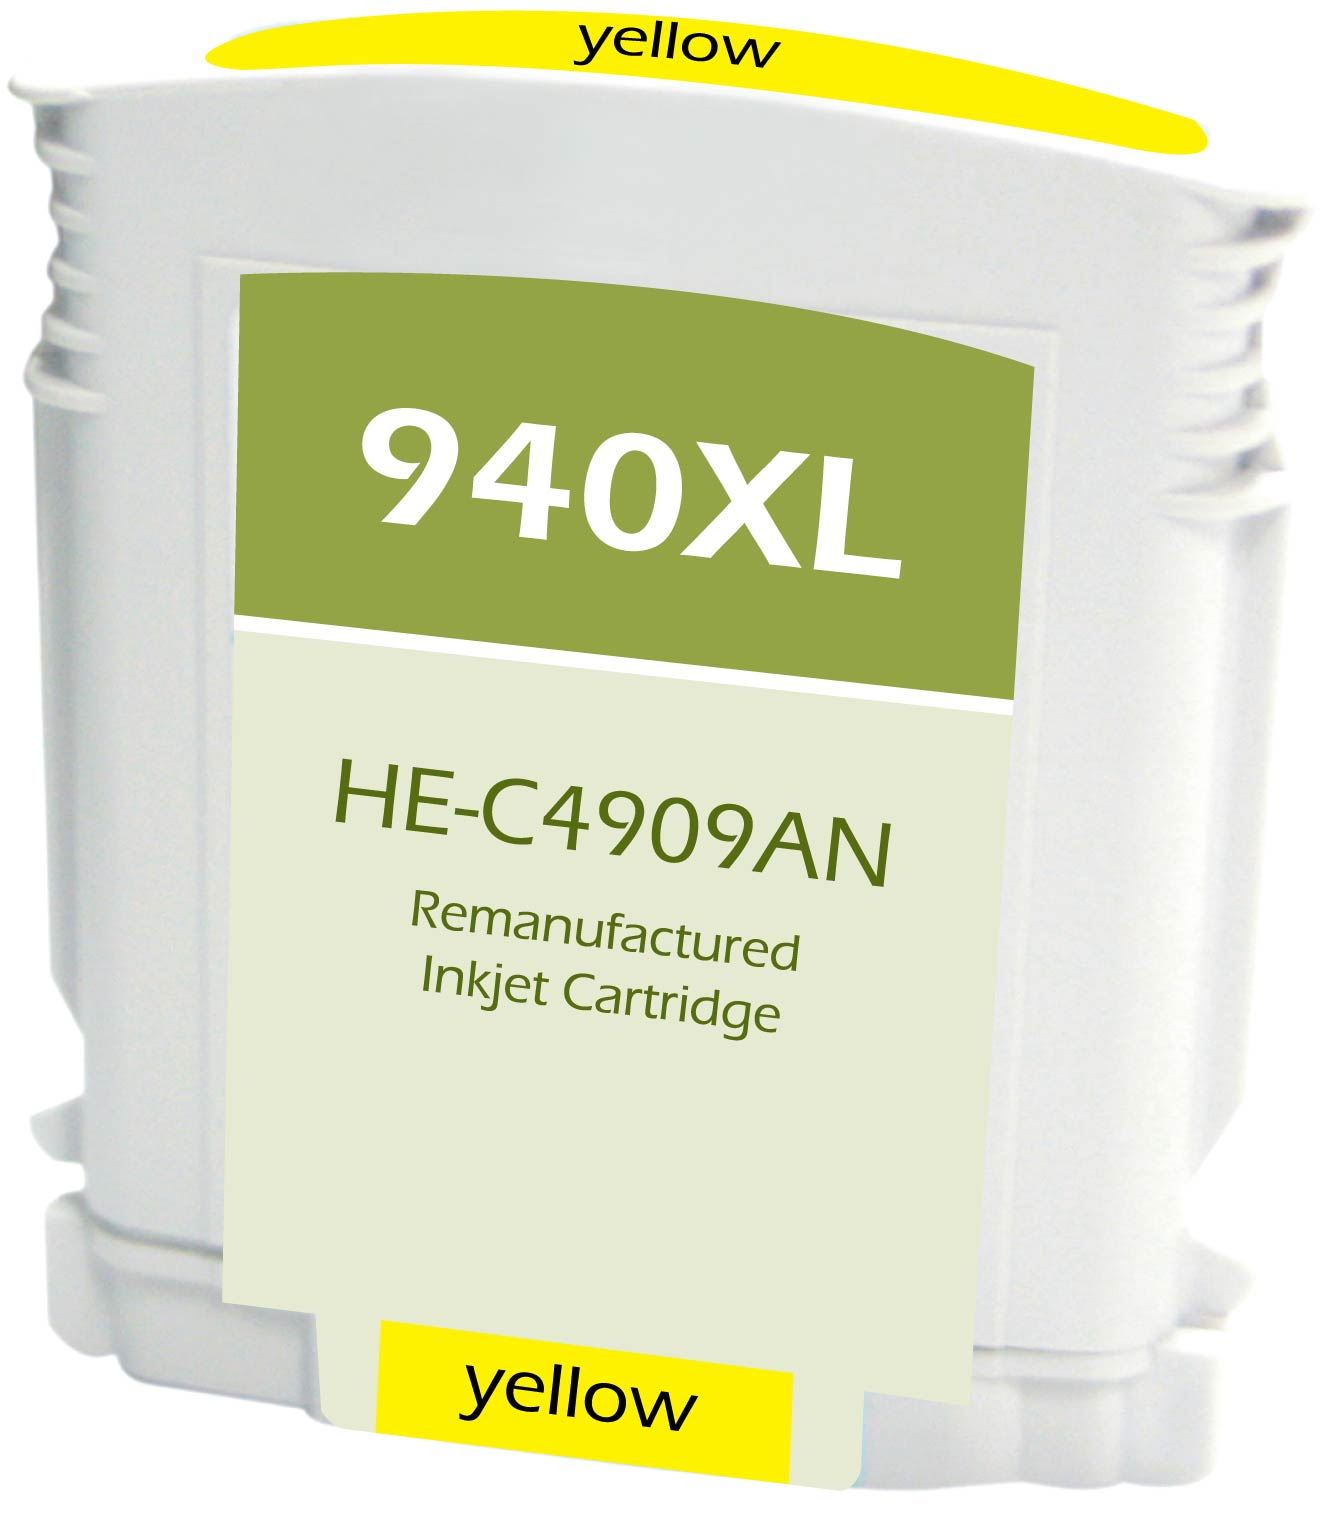 C4905AN Ink /& Toner USA Remanufactured Inkjet Replacement for HP C4909AN Yellow Works with: OfficeJet Pro 8000 8500 HP 940XL Yellow